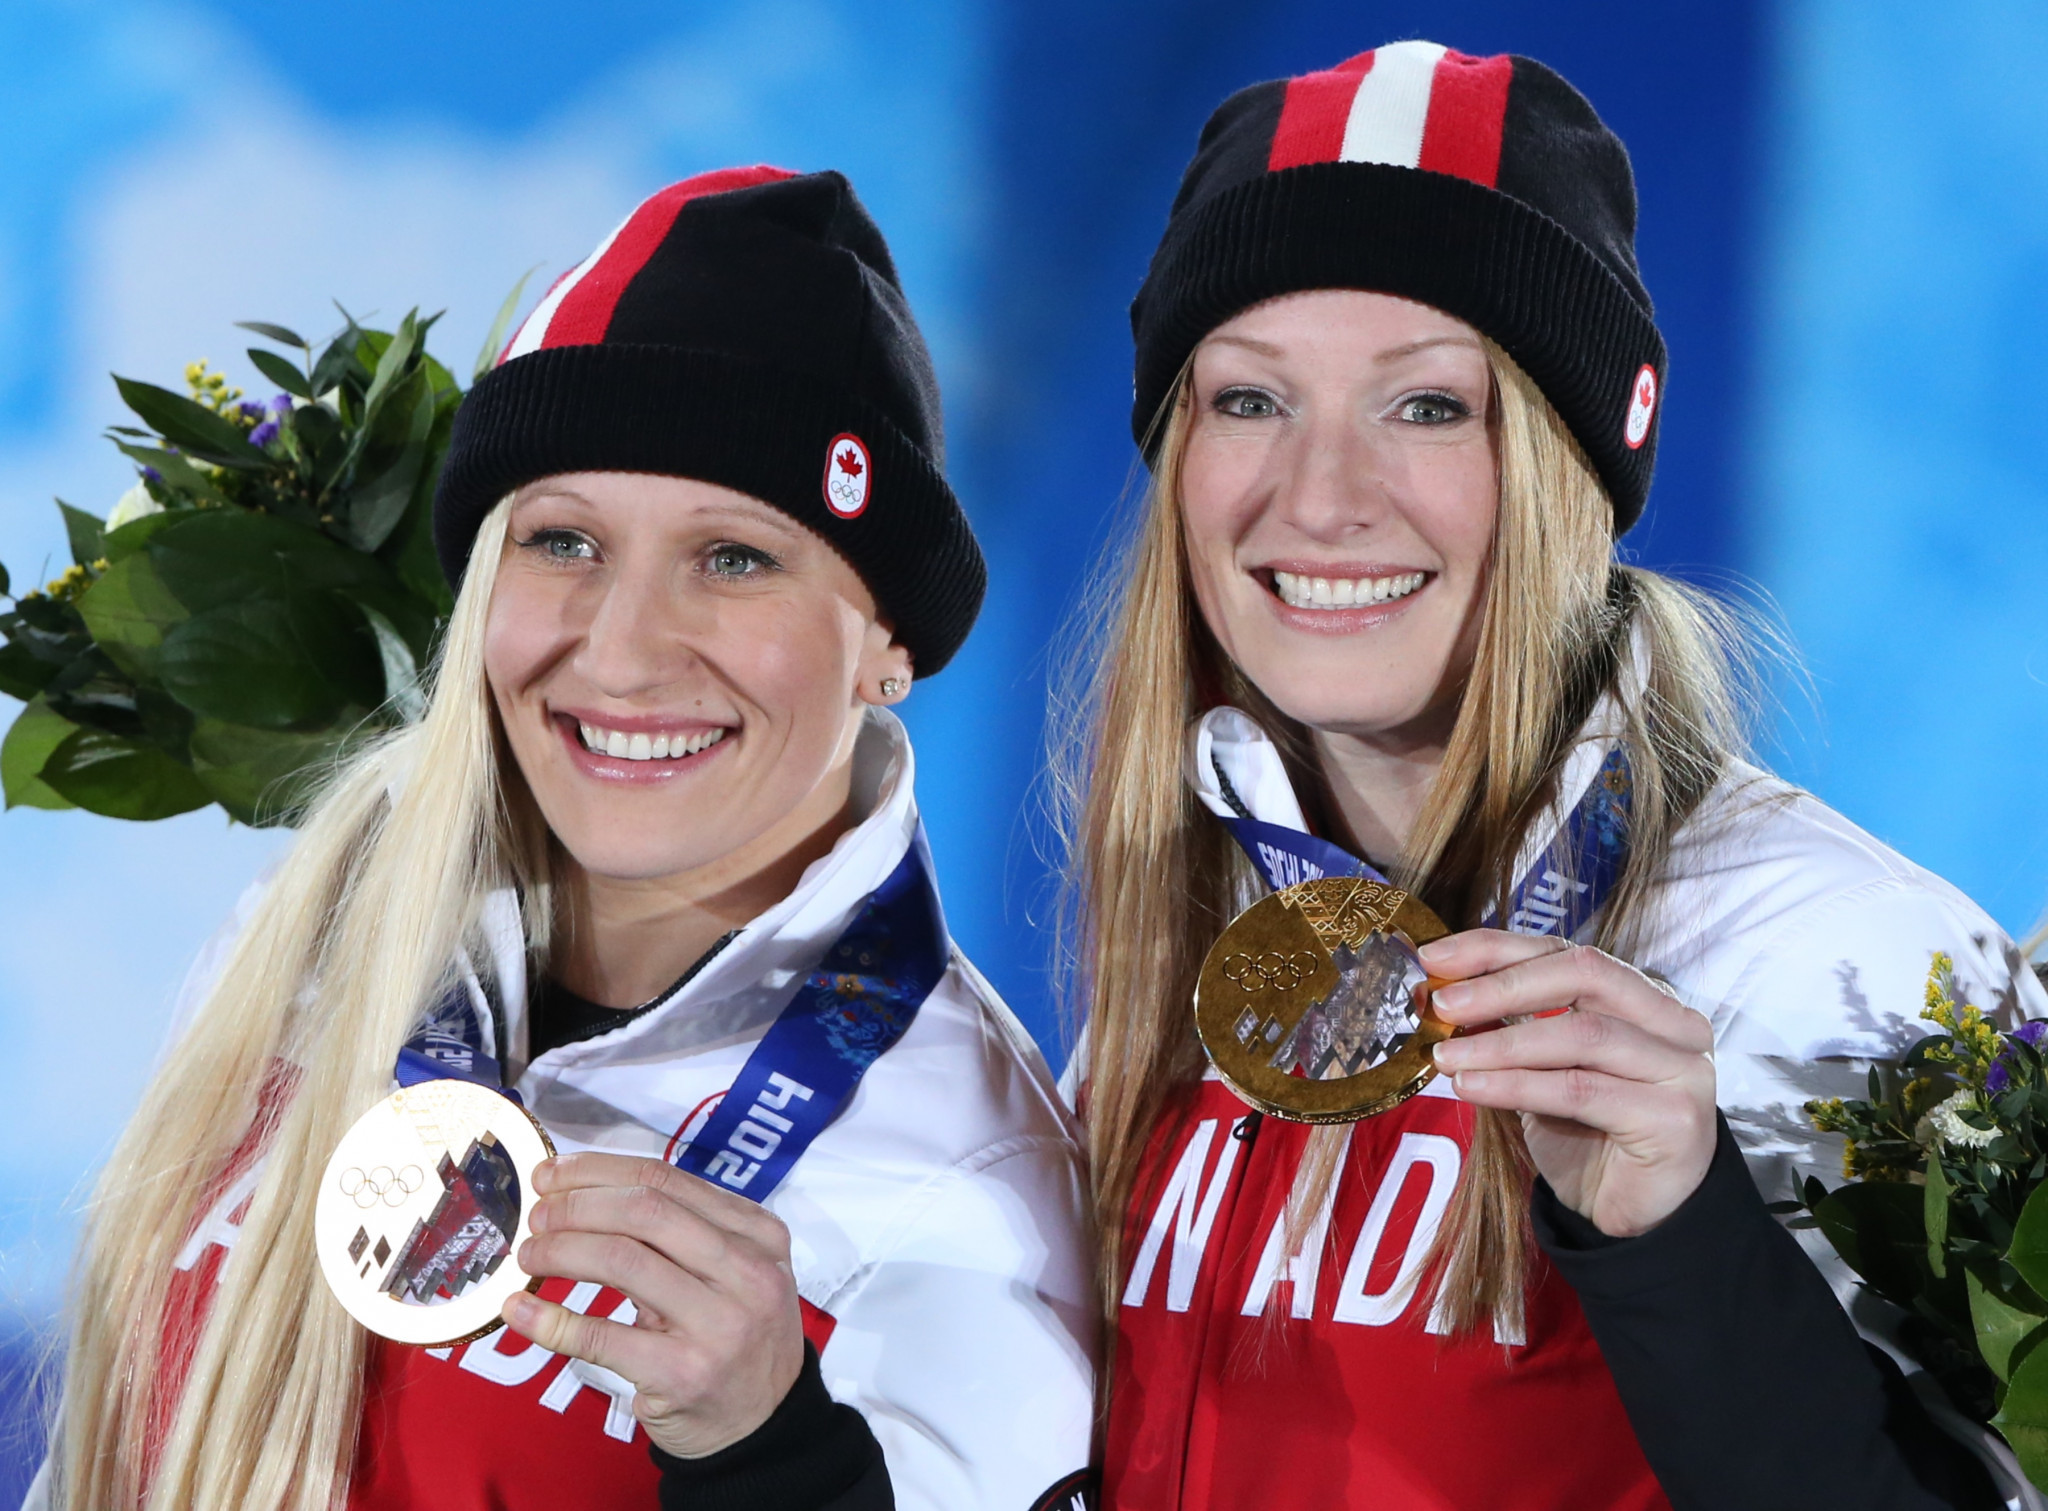 Kaillie Humphries, left, won two-person bobsleigh gold at the sochi 2014 Winter Olympics ©Getty Images